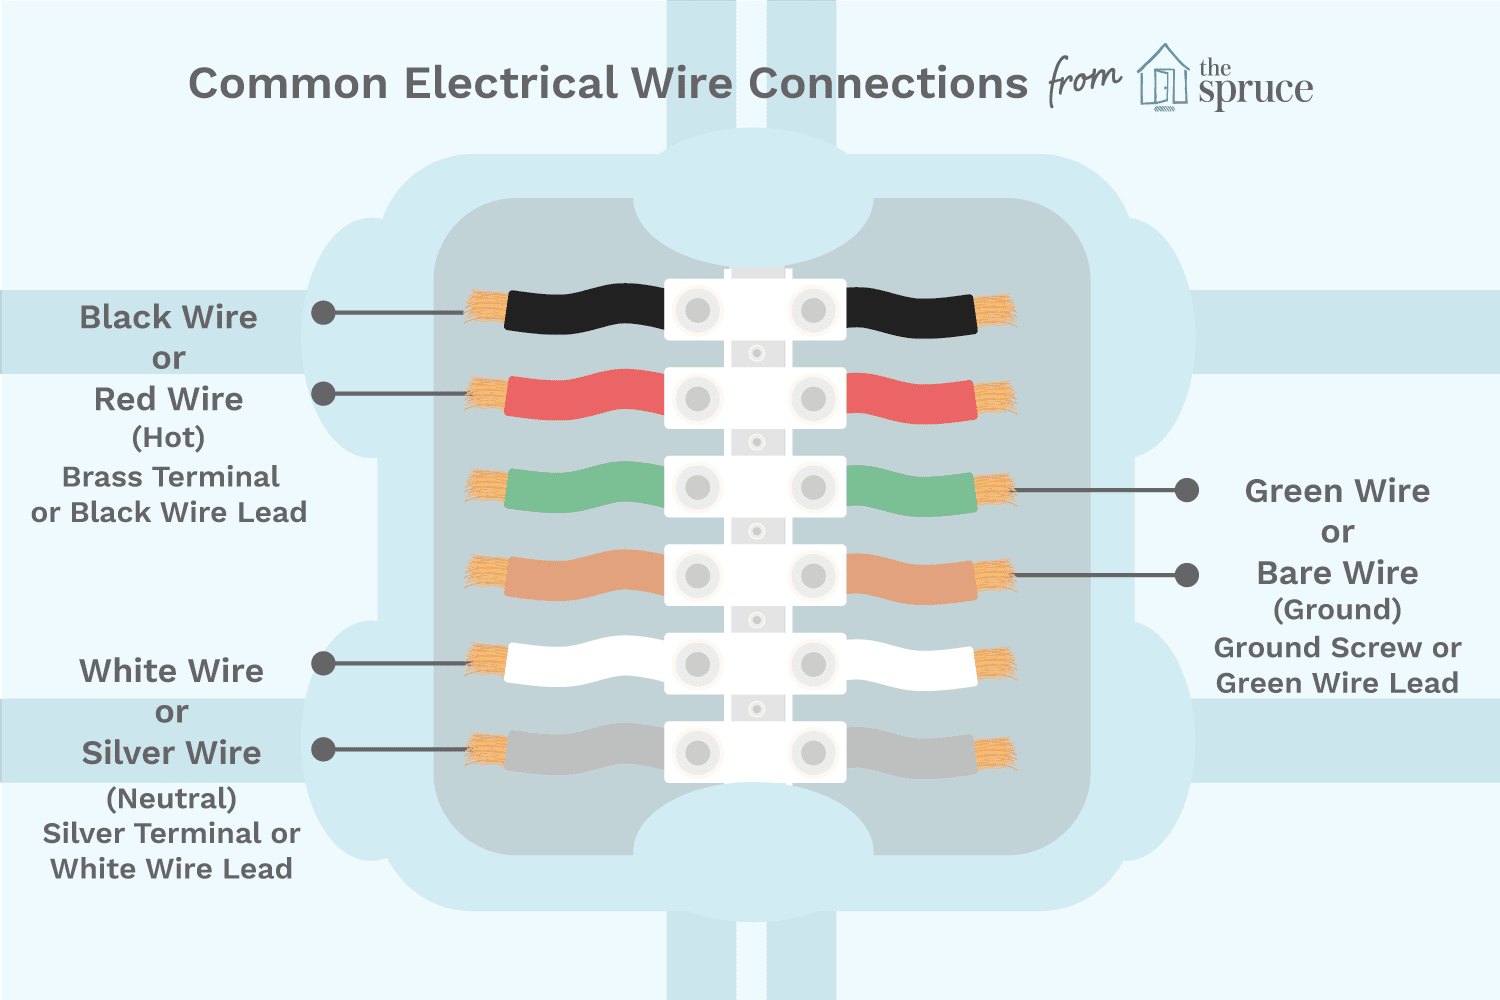 wiring for ac common colors color-coding electrical wires and terminal screws ac wiring colors white copper #13